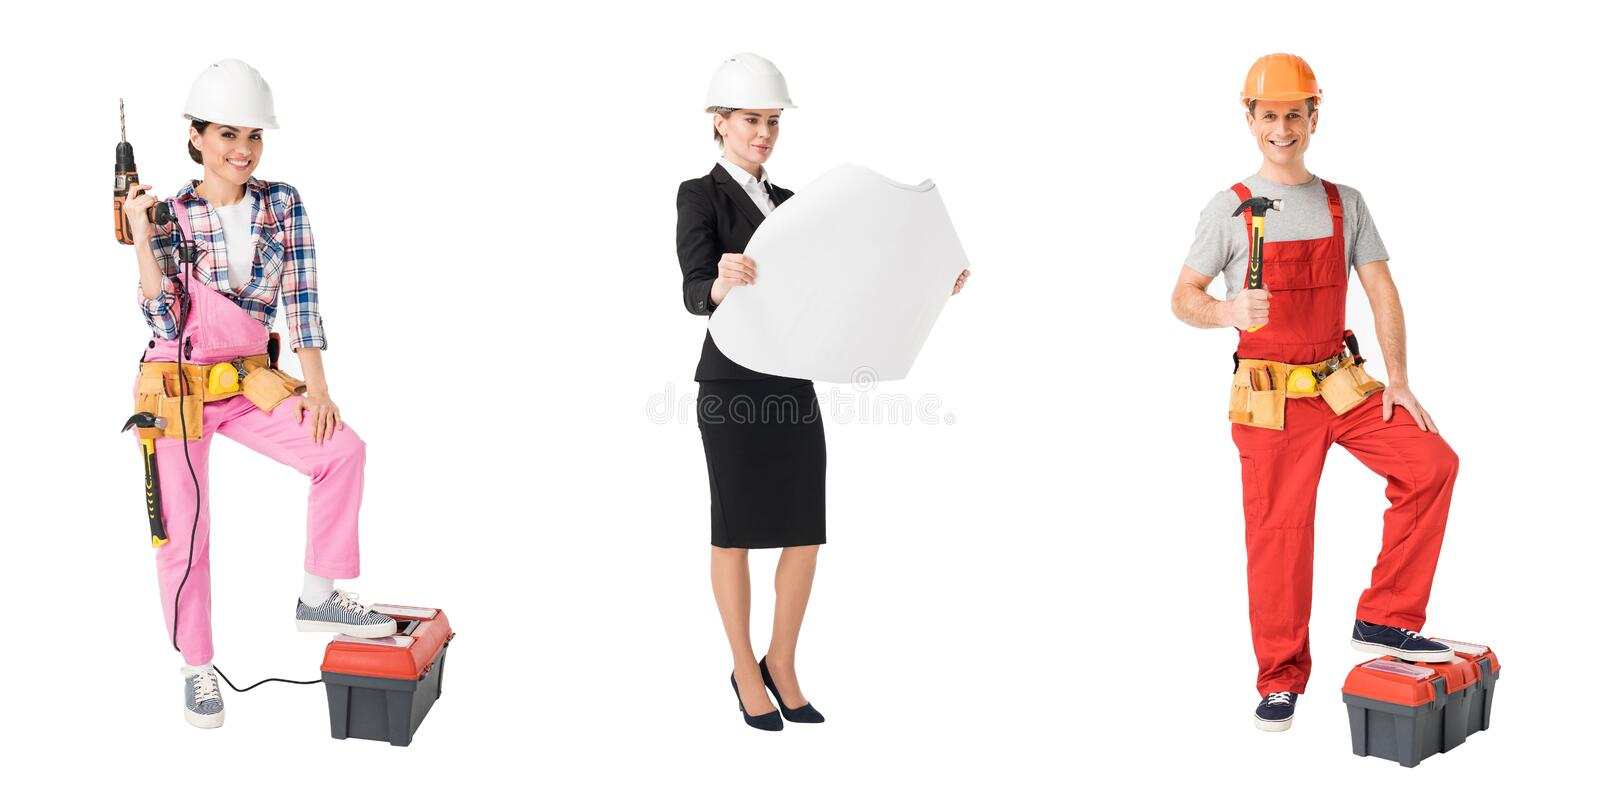 Collage with construction and repair professions workers. Isolated on white stock photo